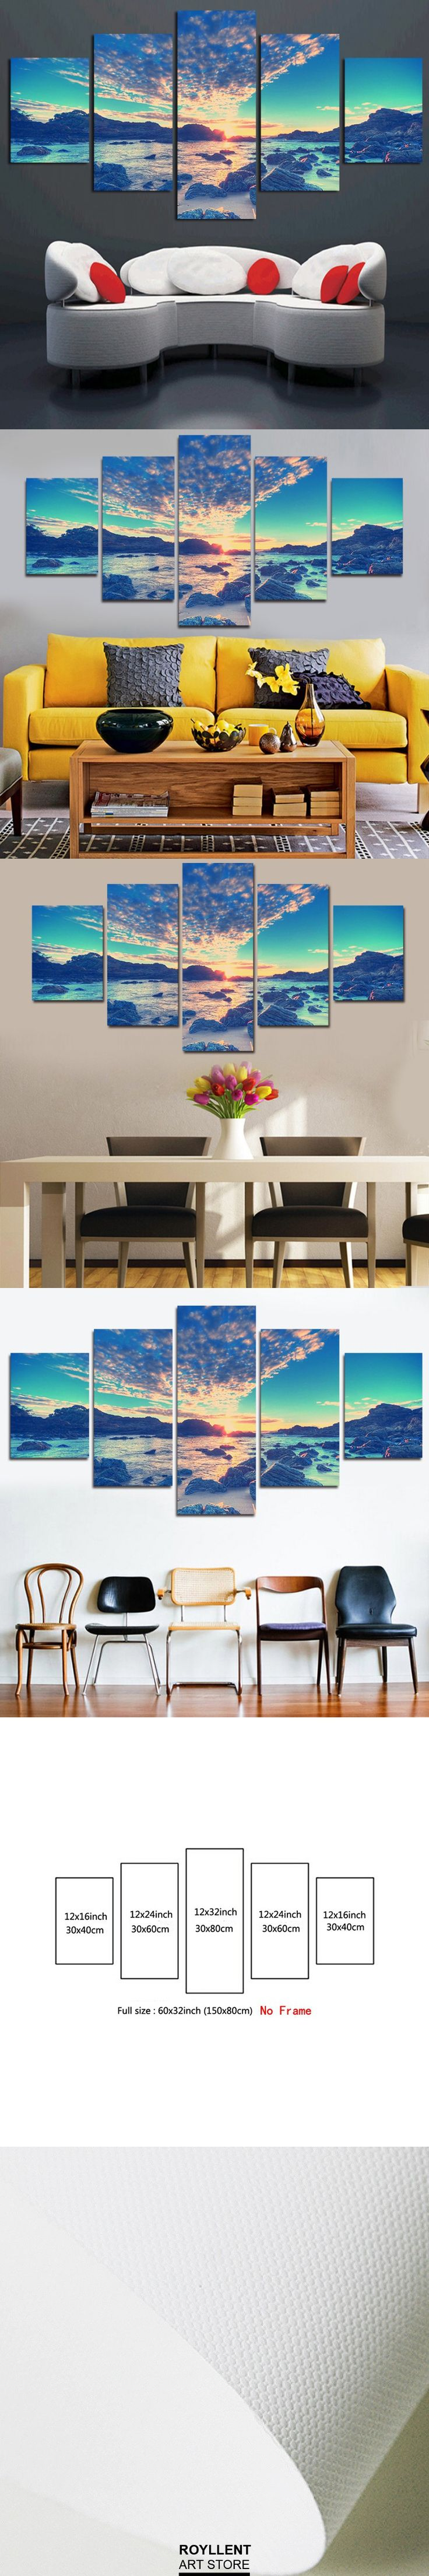 5 Panel Modern Wall Art Home Decoration Canvas Painting Canvas Prints Sea Scenery Beach Sailing Pictures Prints Art (Unframed) $31.88